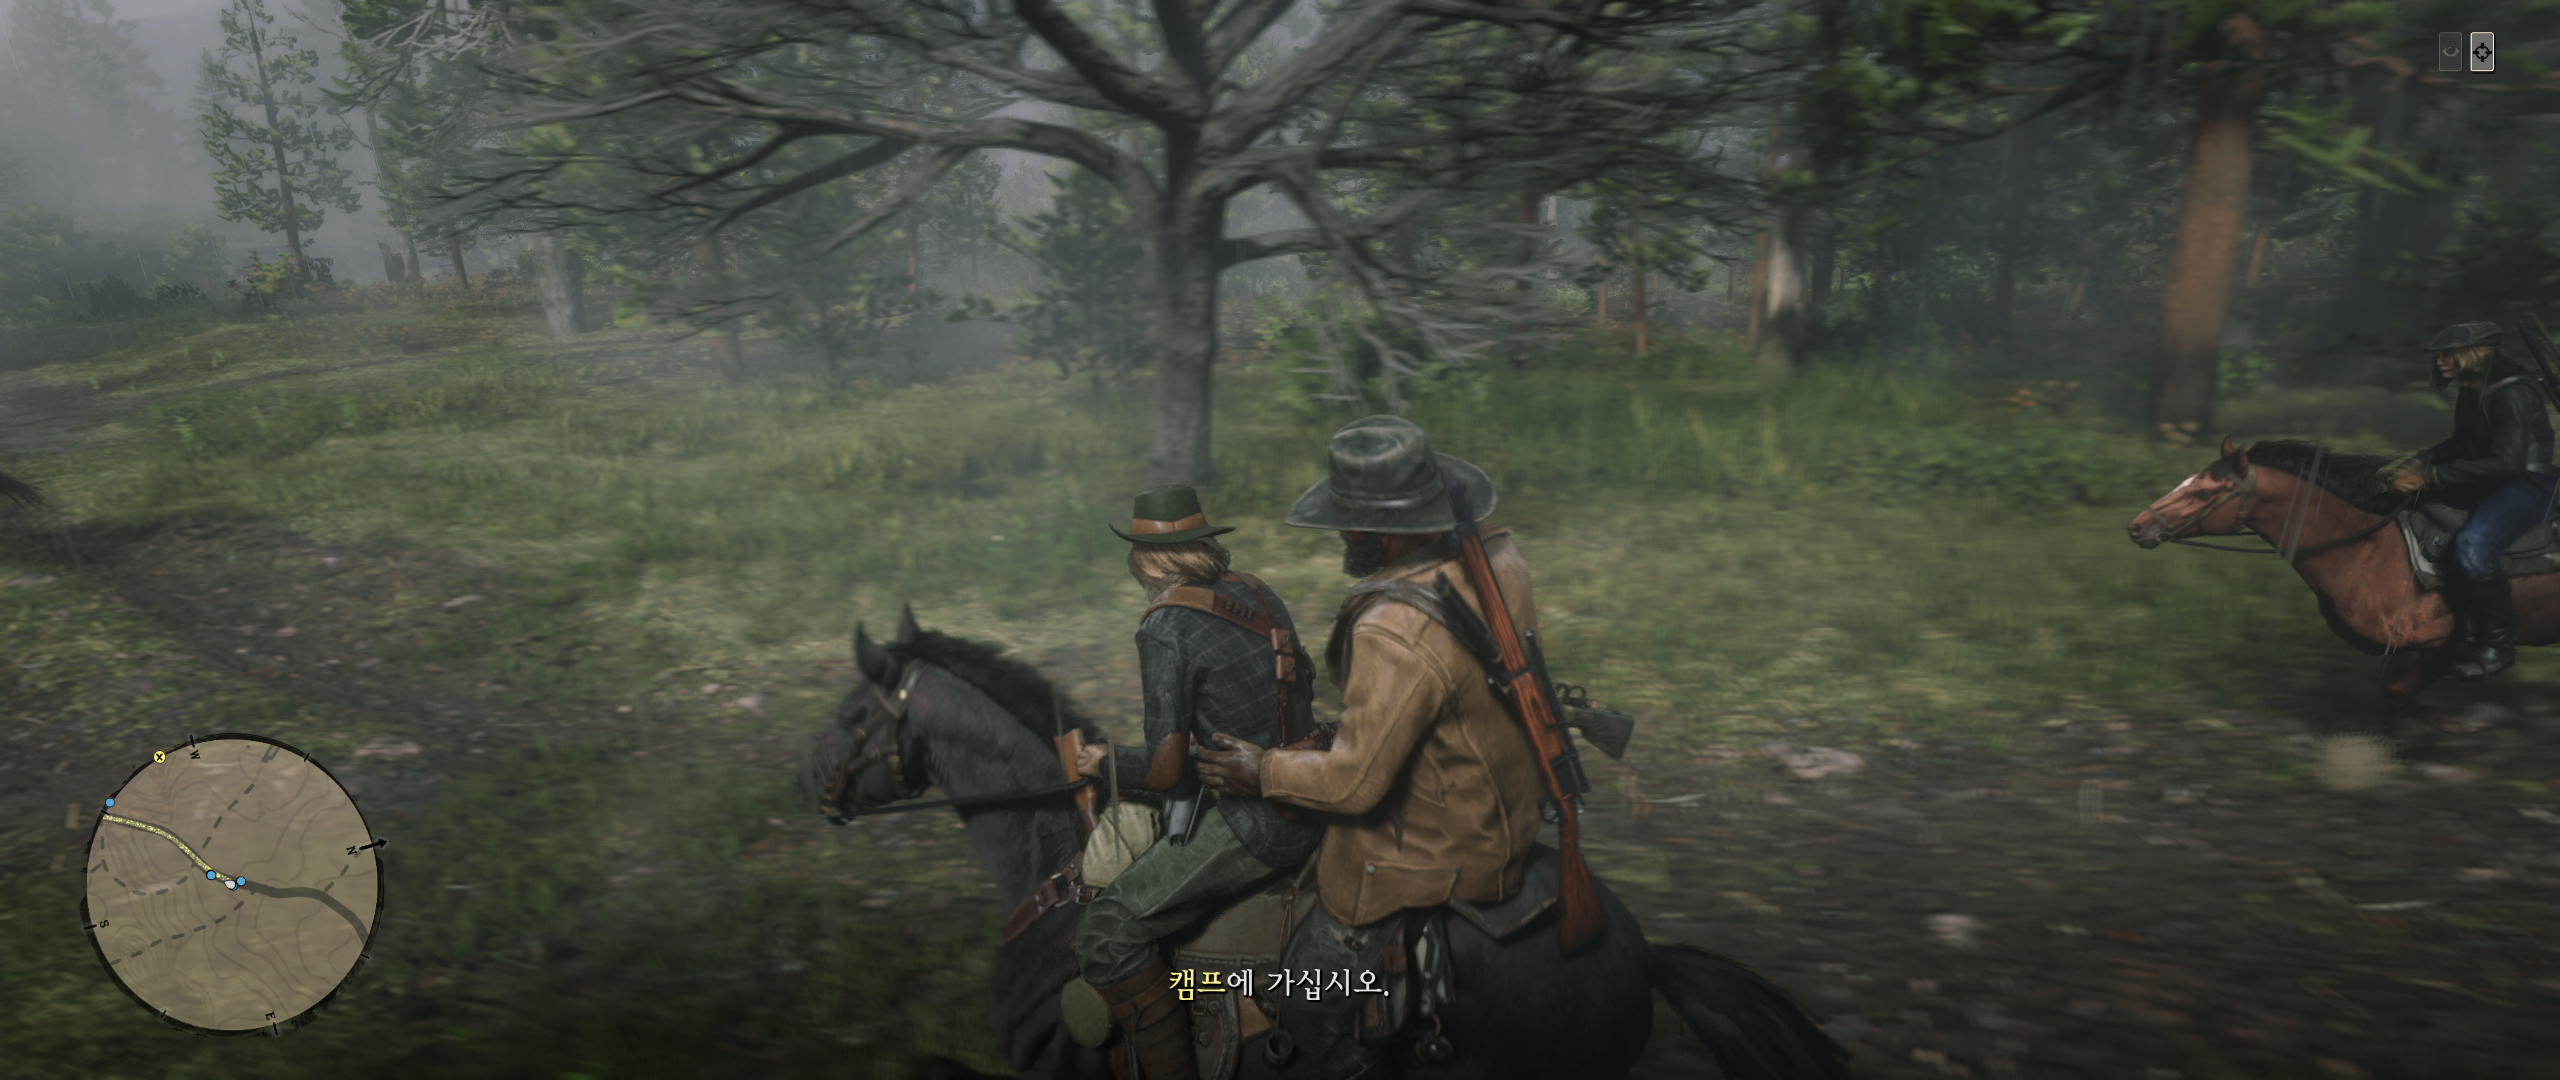 Red_Dead_Redemption_2_Screenshot_2019.12.03_-_21.21.09.43